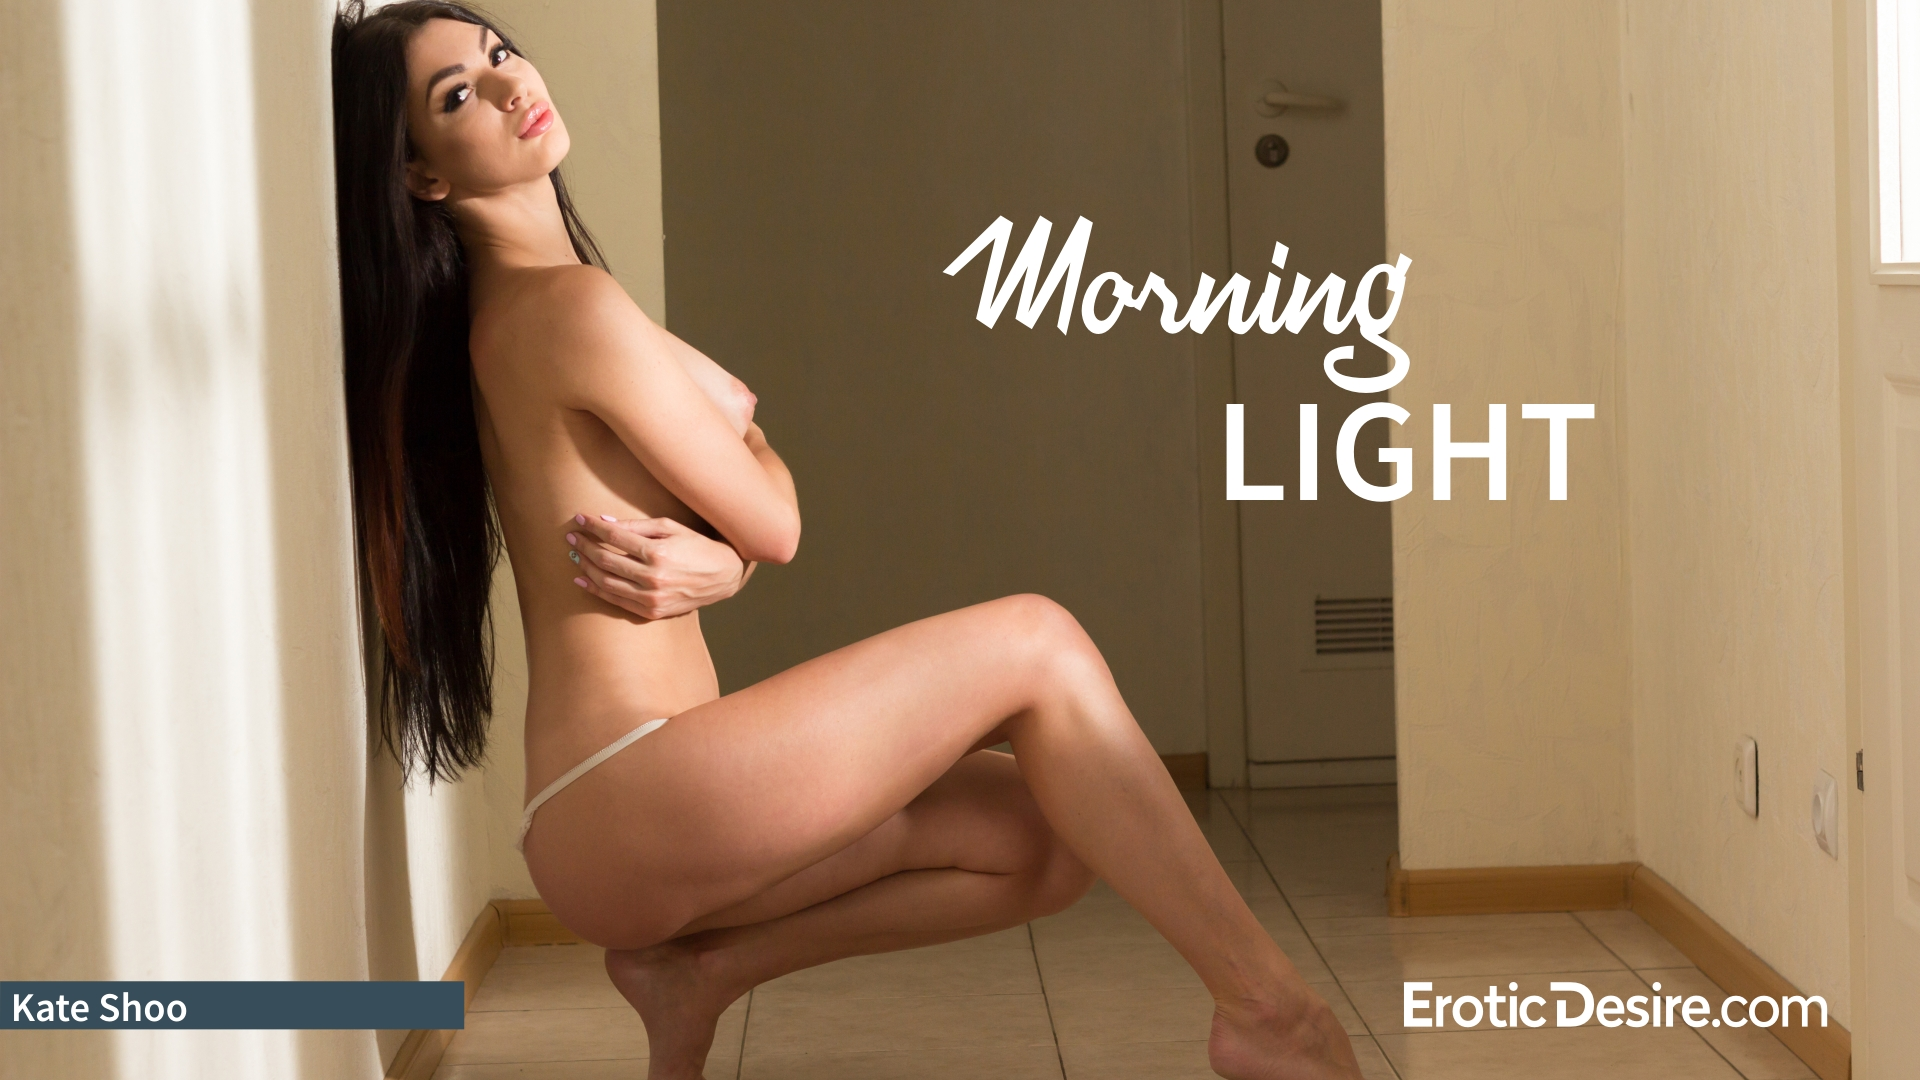 Kate Shoo in Morning Light Video Cover Image